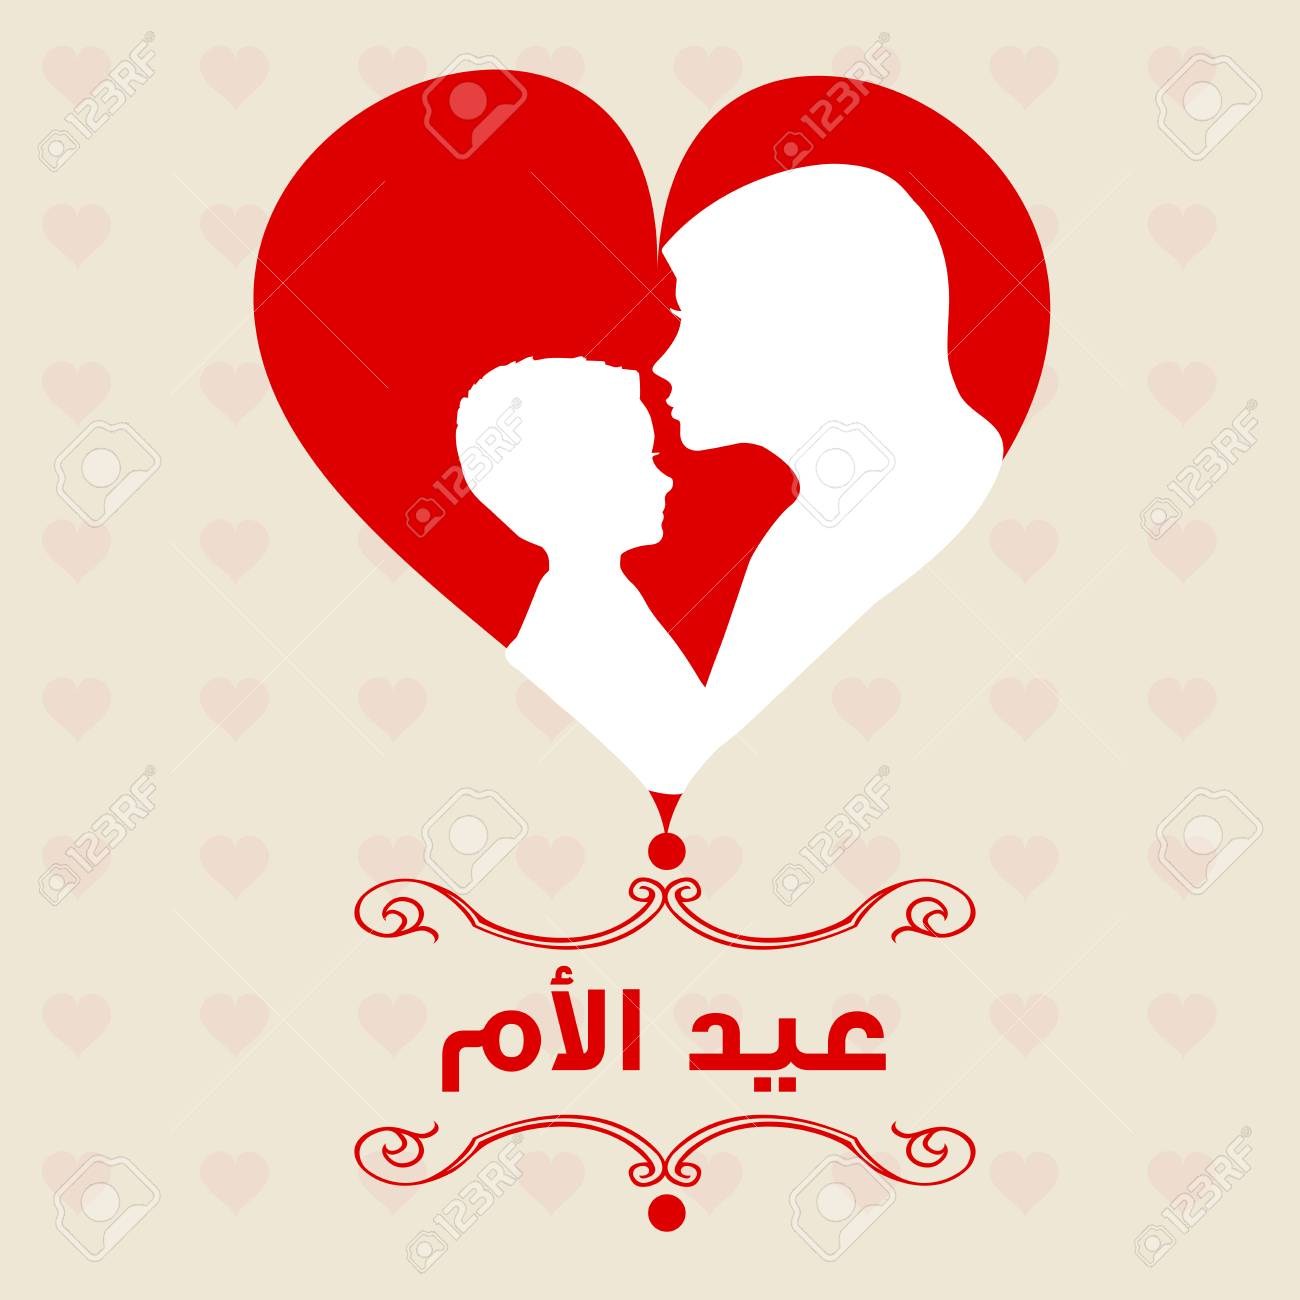 Egypt calligraphy images stock pictures royalty free egypt mothers day greeting card with arabic calligraphy eid al um translation i love biocorpaavc